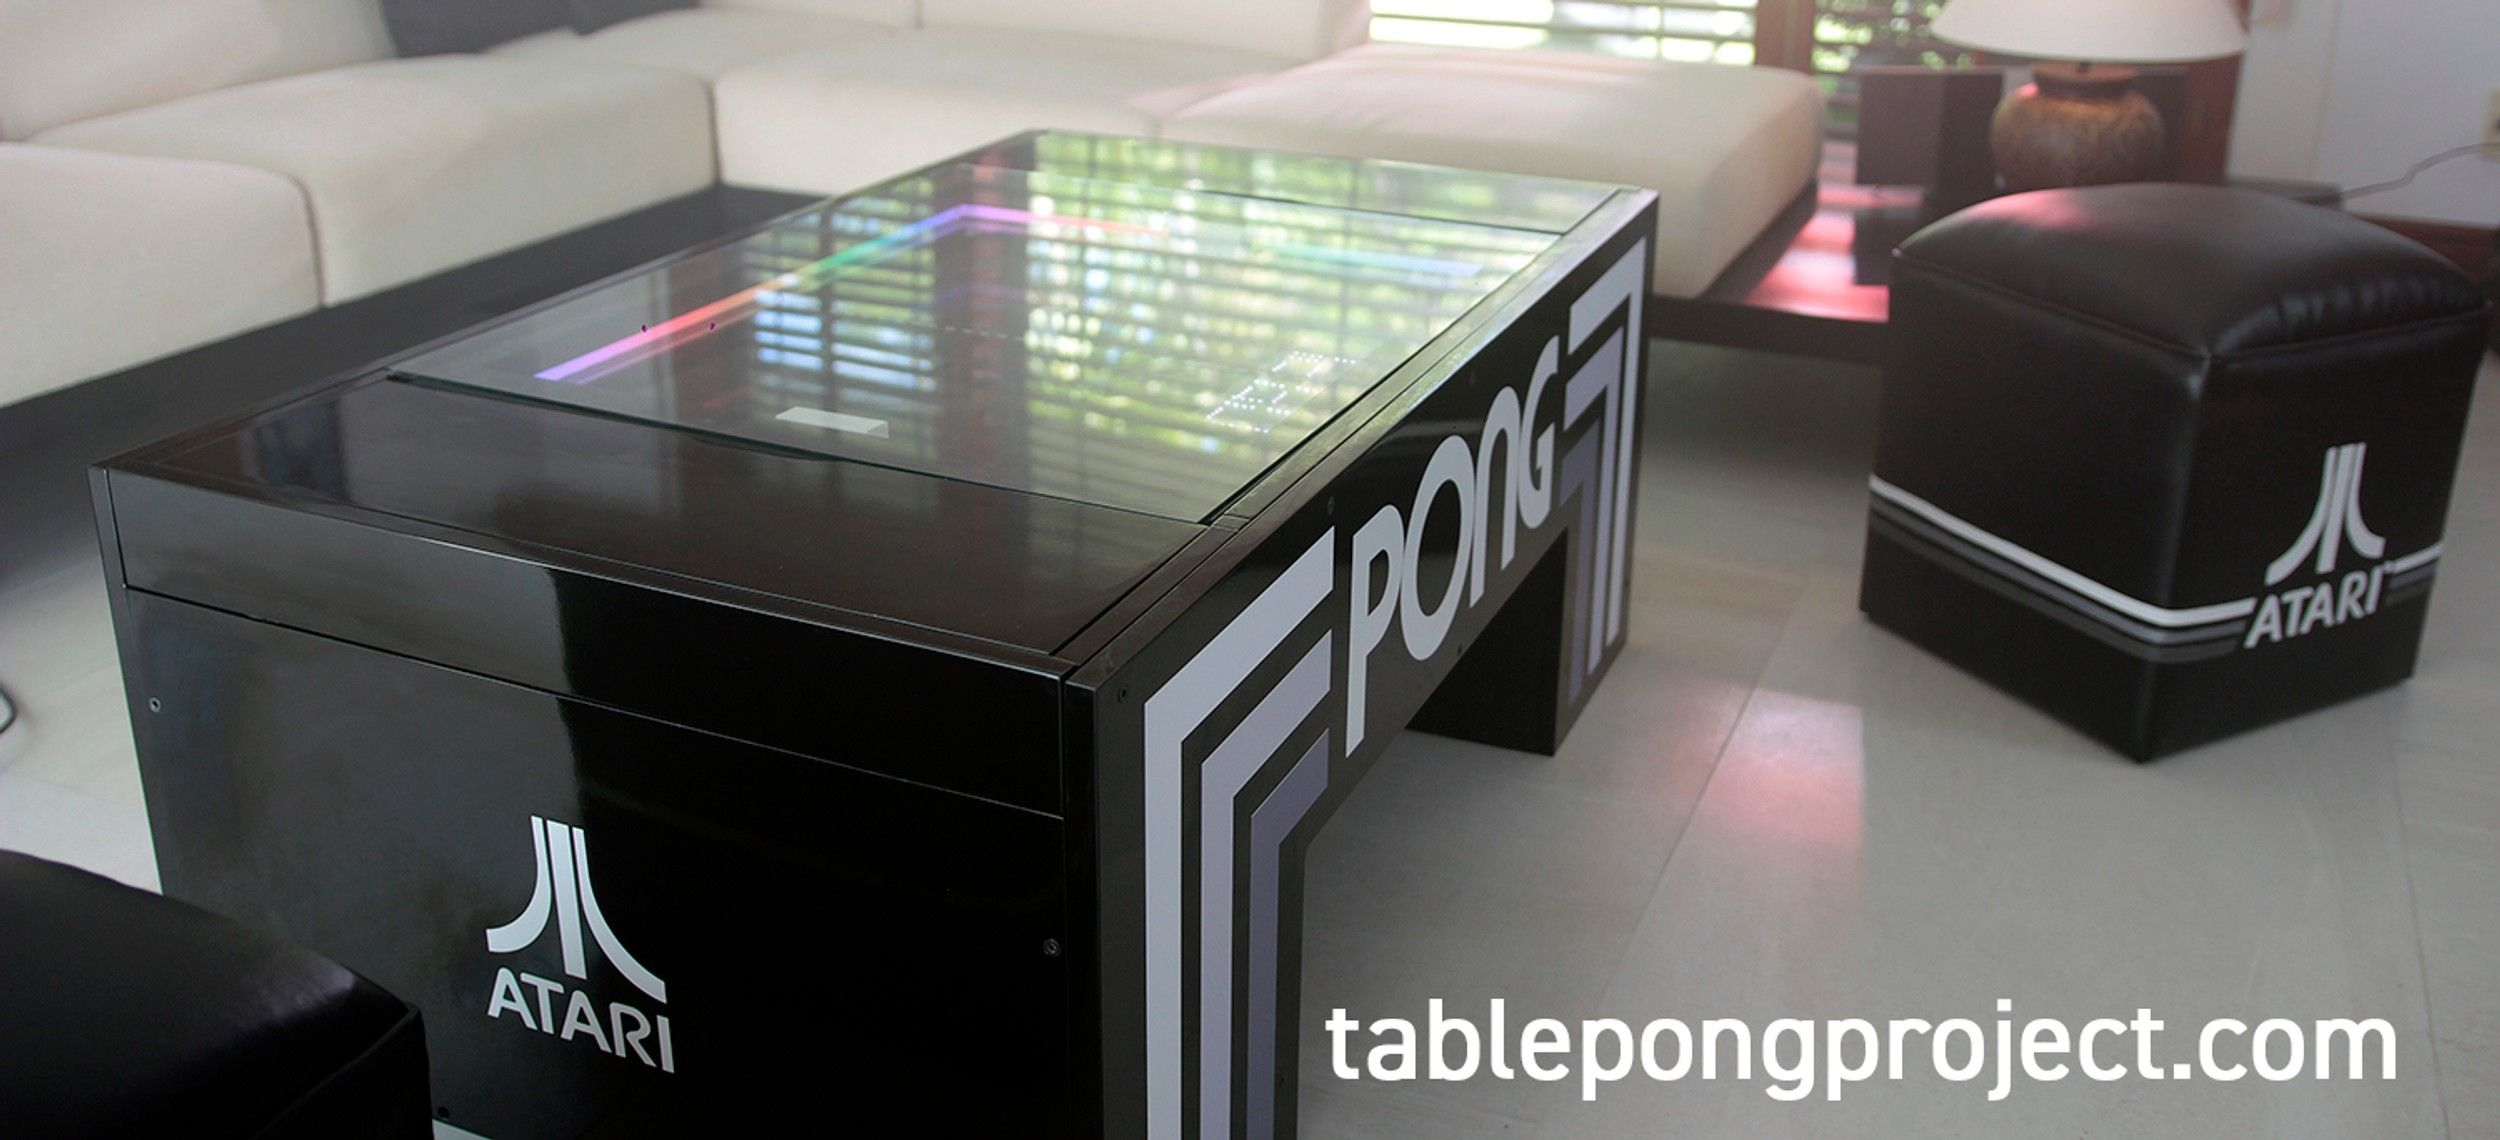 The Atari Pong Table That Everyone Is Talking About Get Into The